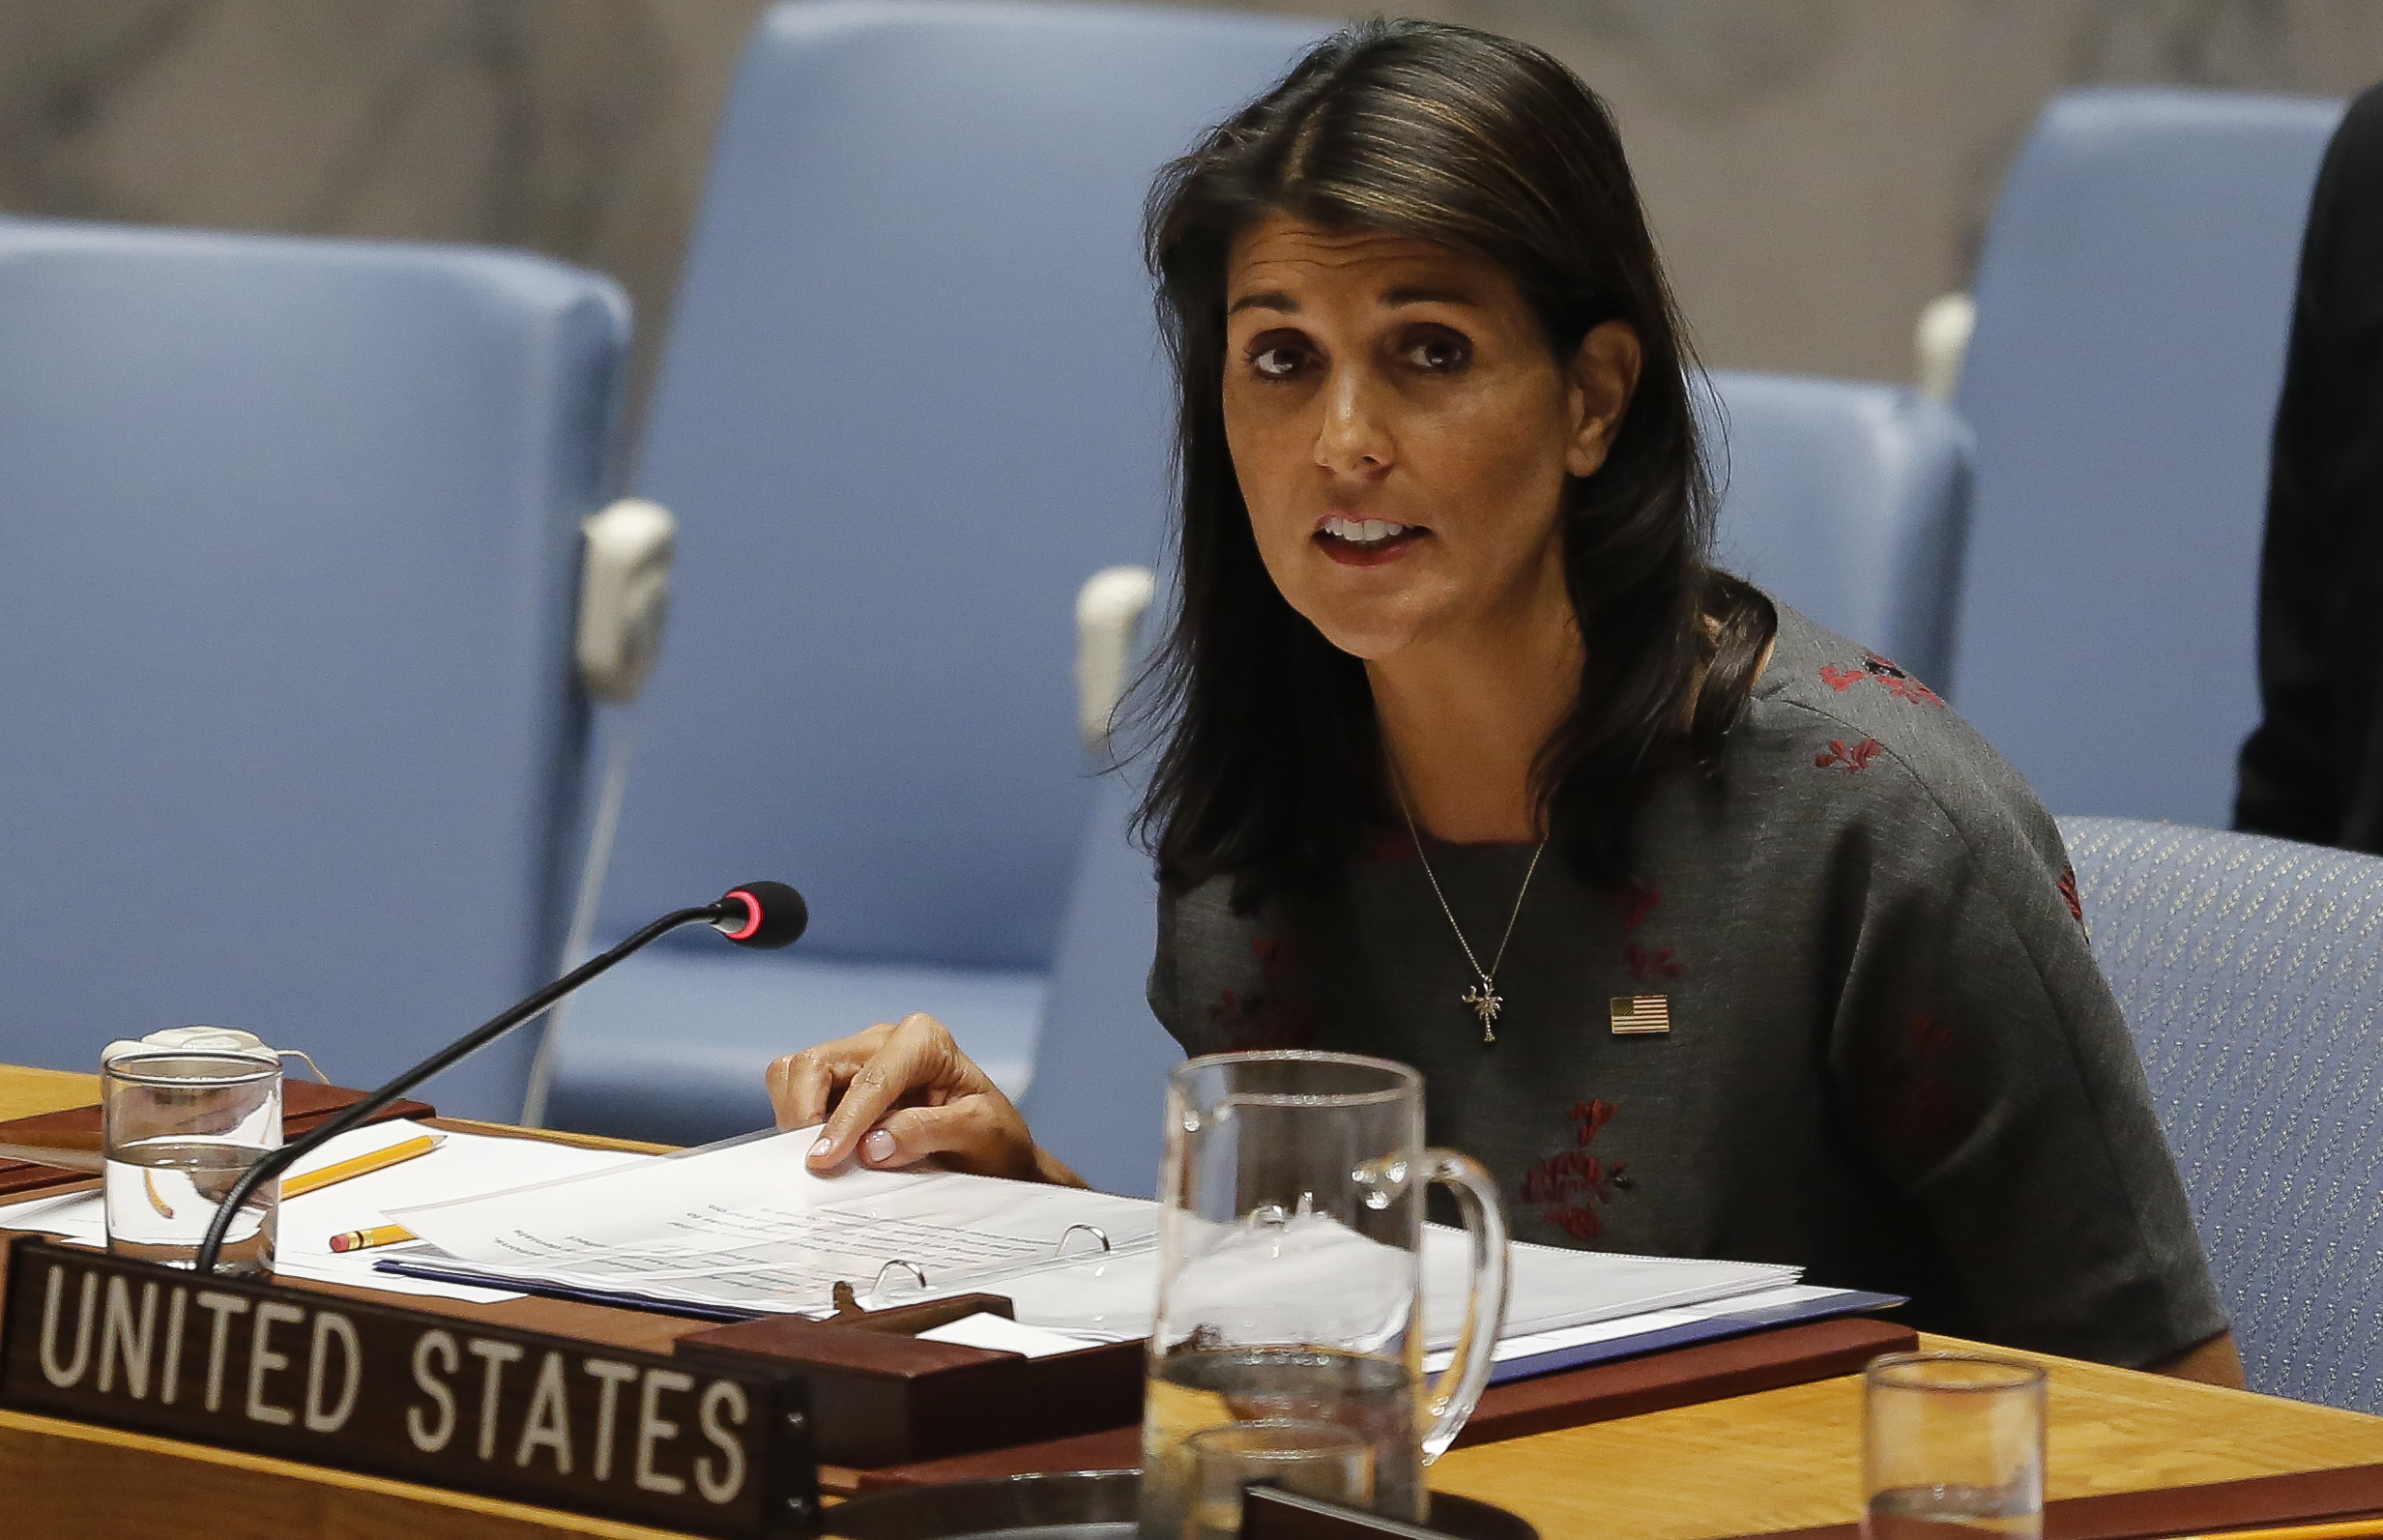 Watch New York Times Nikki Haley curtains story revised video